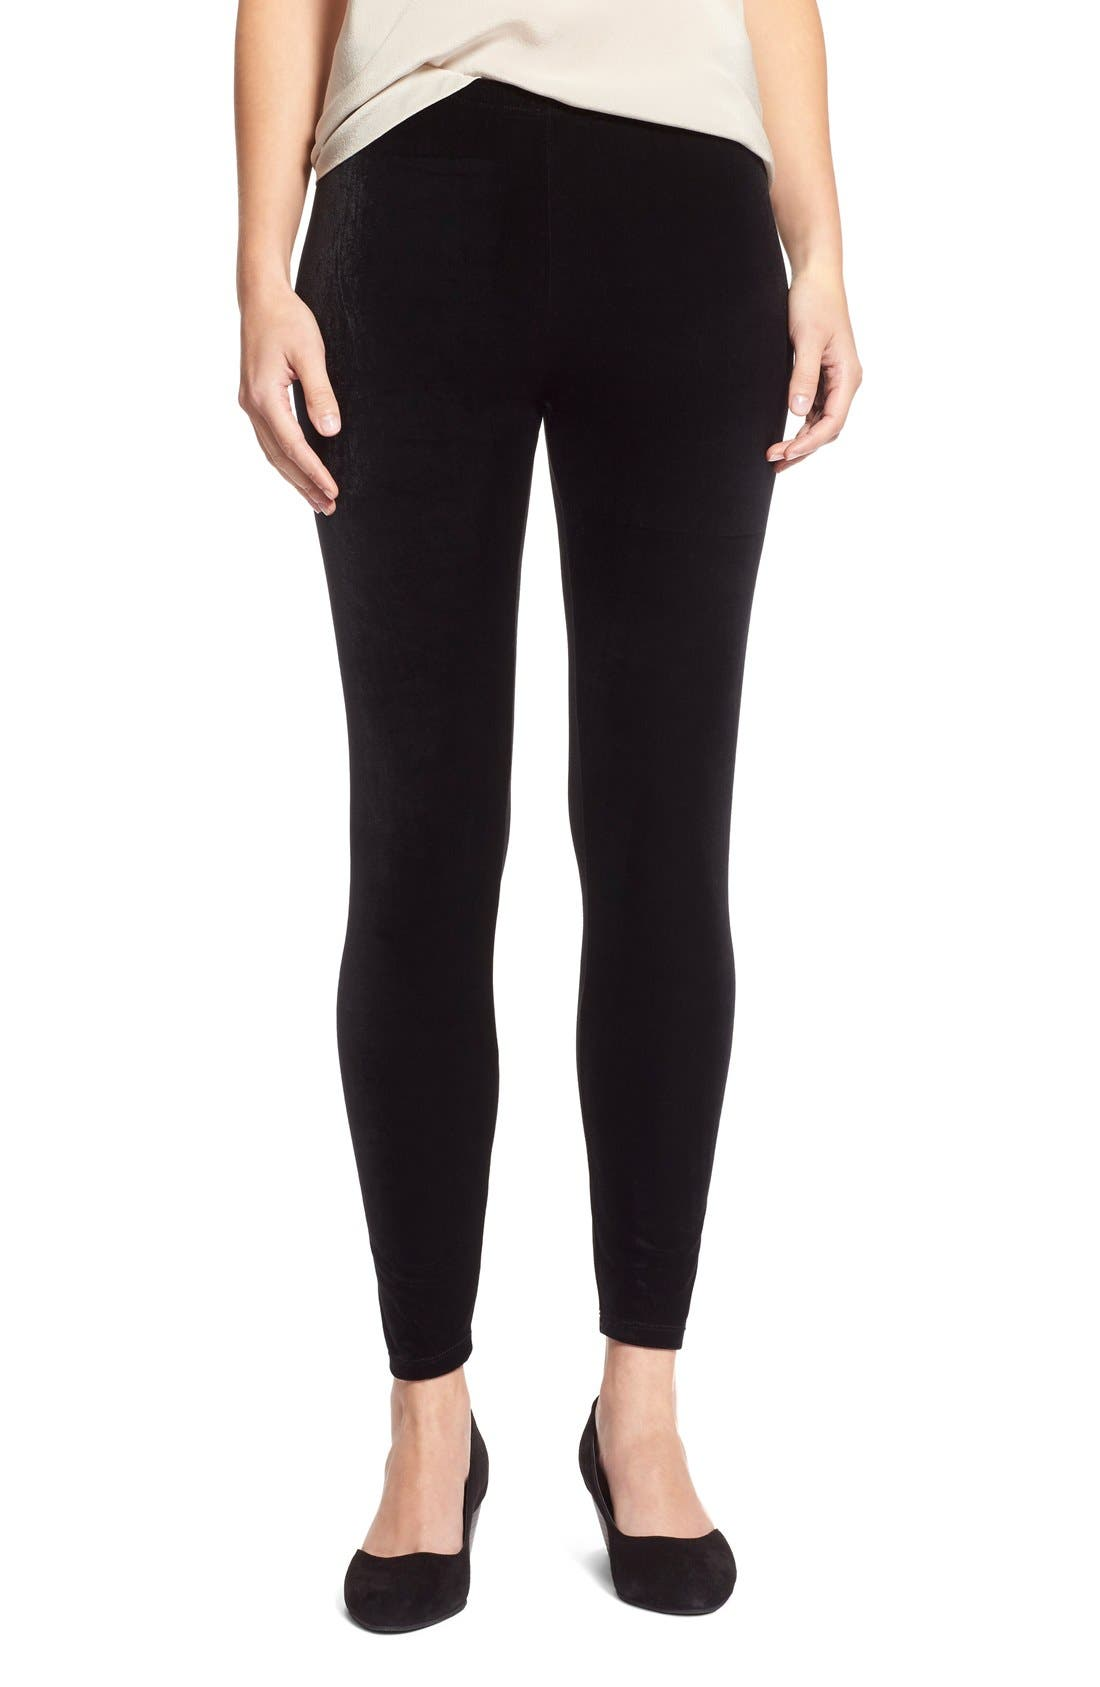 Alternate Image 1 Selected - Eileen Fisher Stretch Velvet Leggings (Regular & Petite)